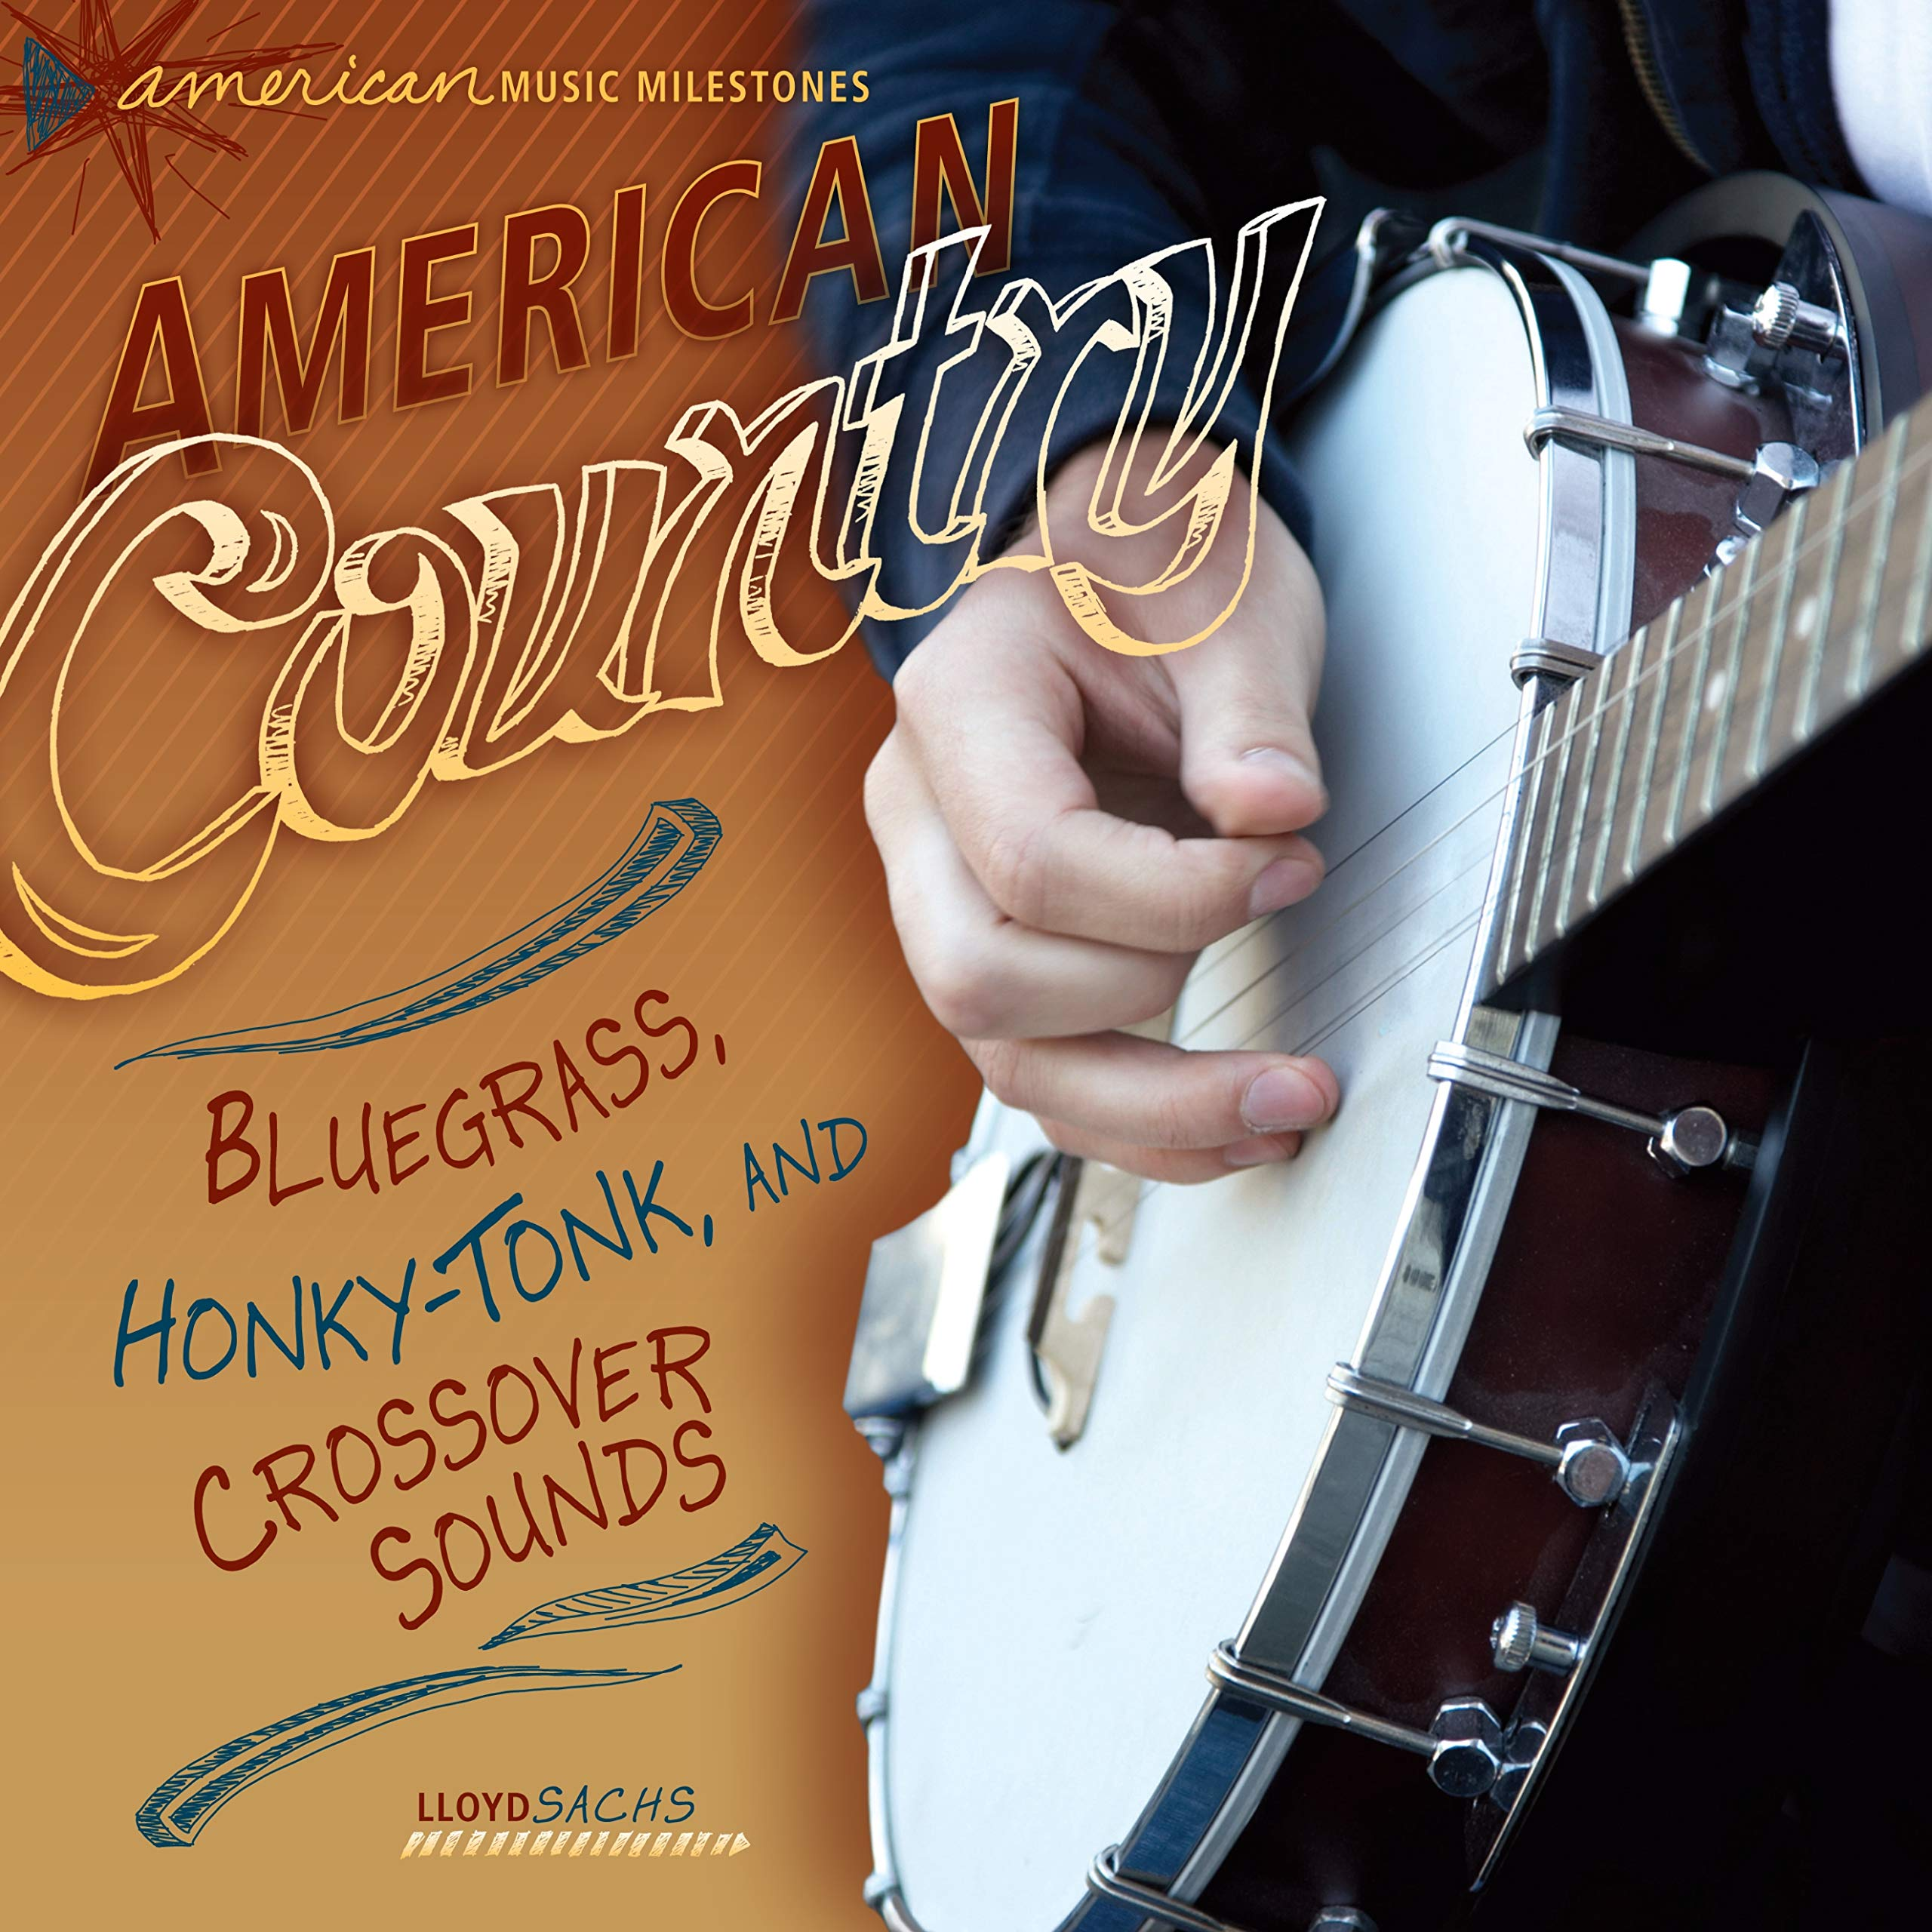 American Country: Bluegrass, Honky-Tonk, and Crossover Sounds (American Music Milestones) pdf epub